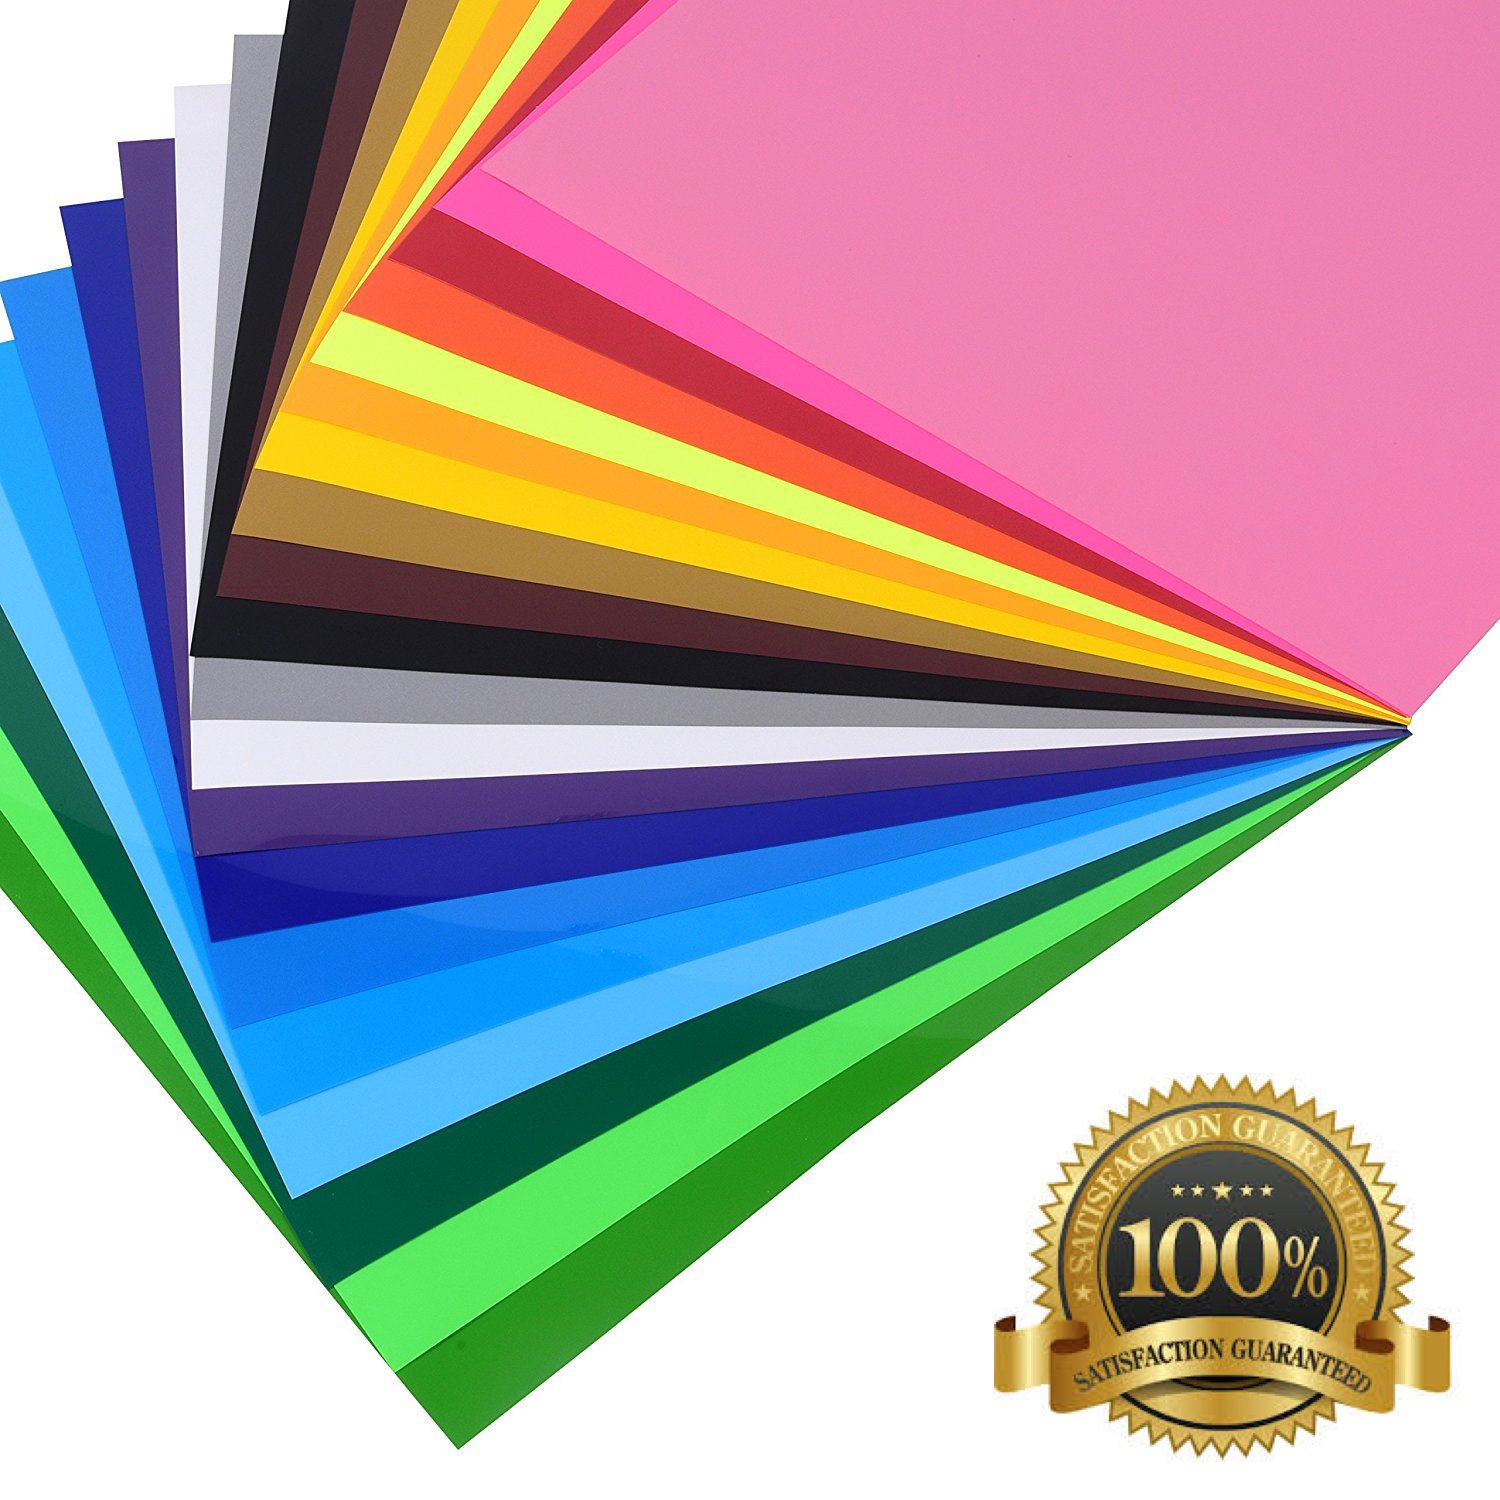 "Heat Transfer Vinyl Bundle | 12 Sheets + 1 Bonus Teflon Sheet Iron On | HTV Silhouette for Cameo, Cricut, Die-Cut or Heat Press Machine | Assorted Colors | 12""x10"""